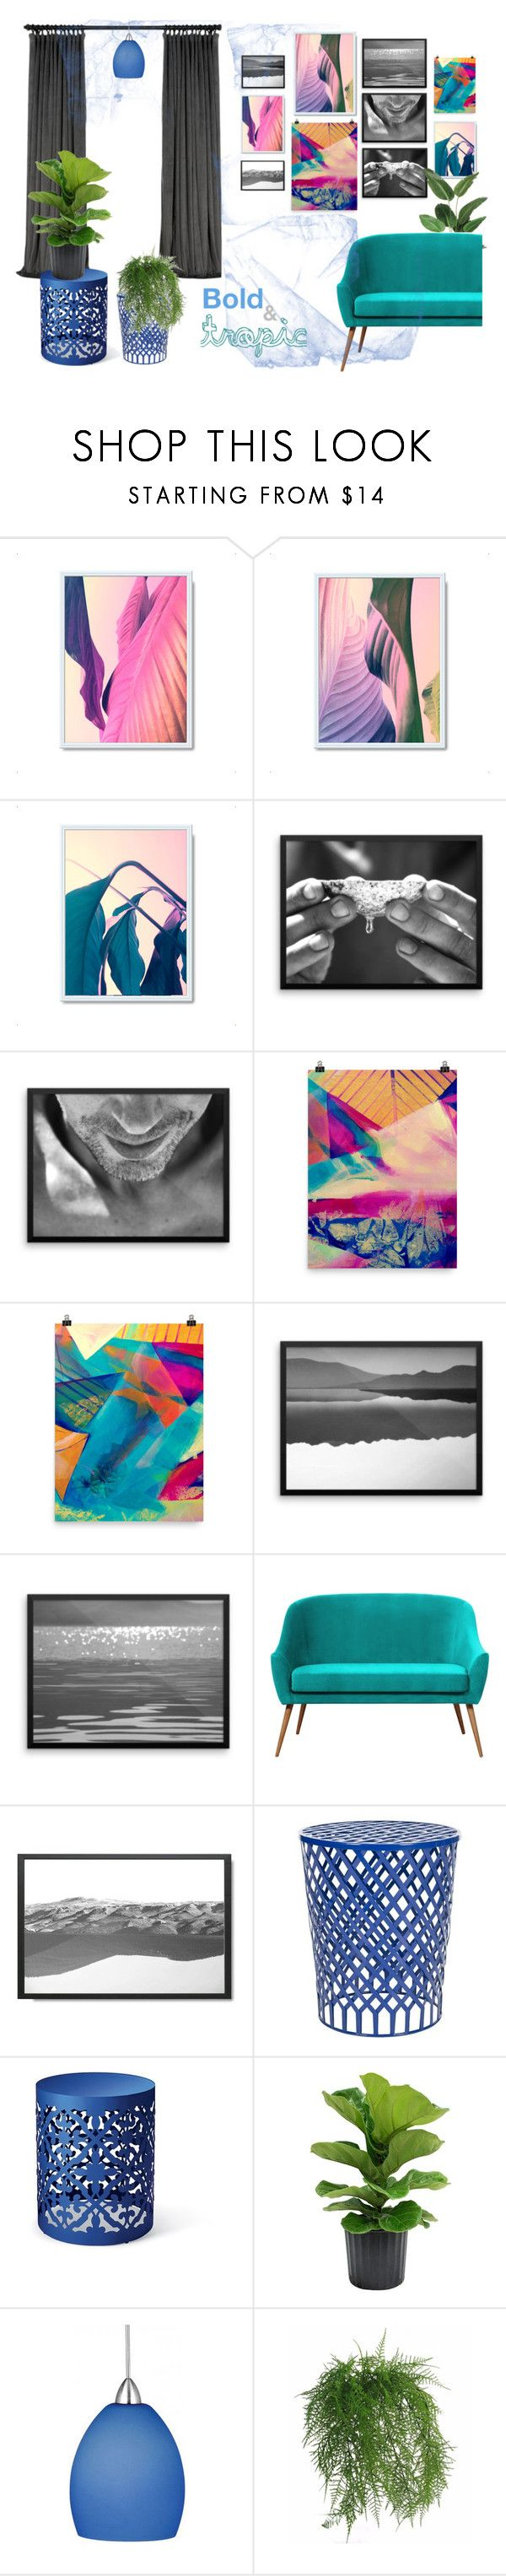 Home decor collection, inspired by tropical atmosphere, nature and summer. Bold color combination. #gallerywall #homedecor #walldecor #livingroomdecor #indoorplants #wallart